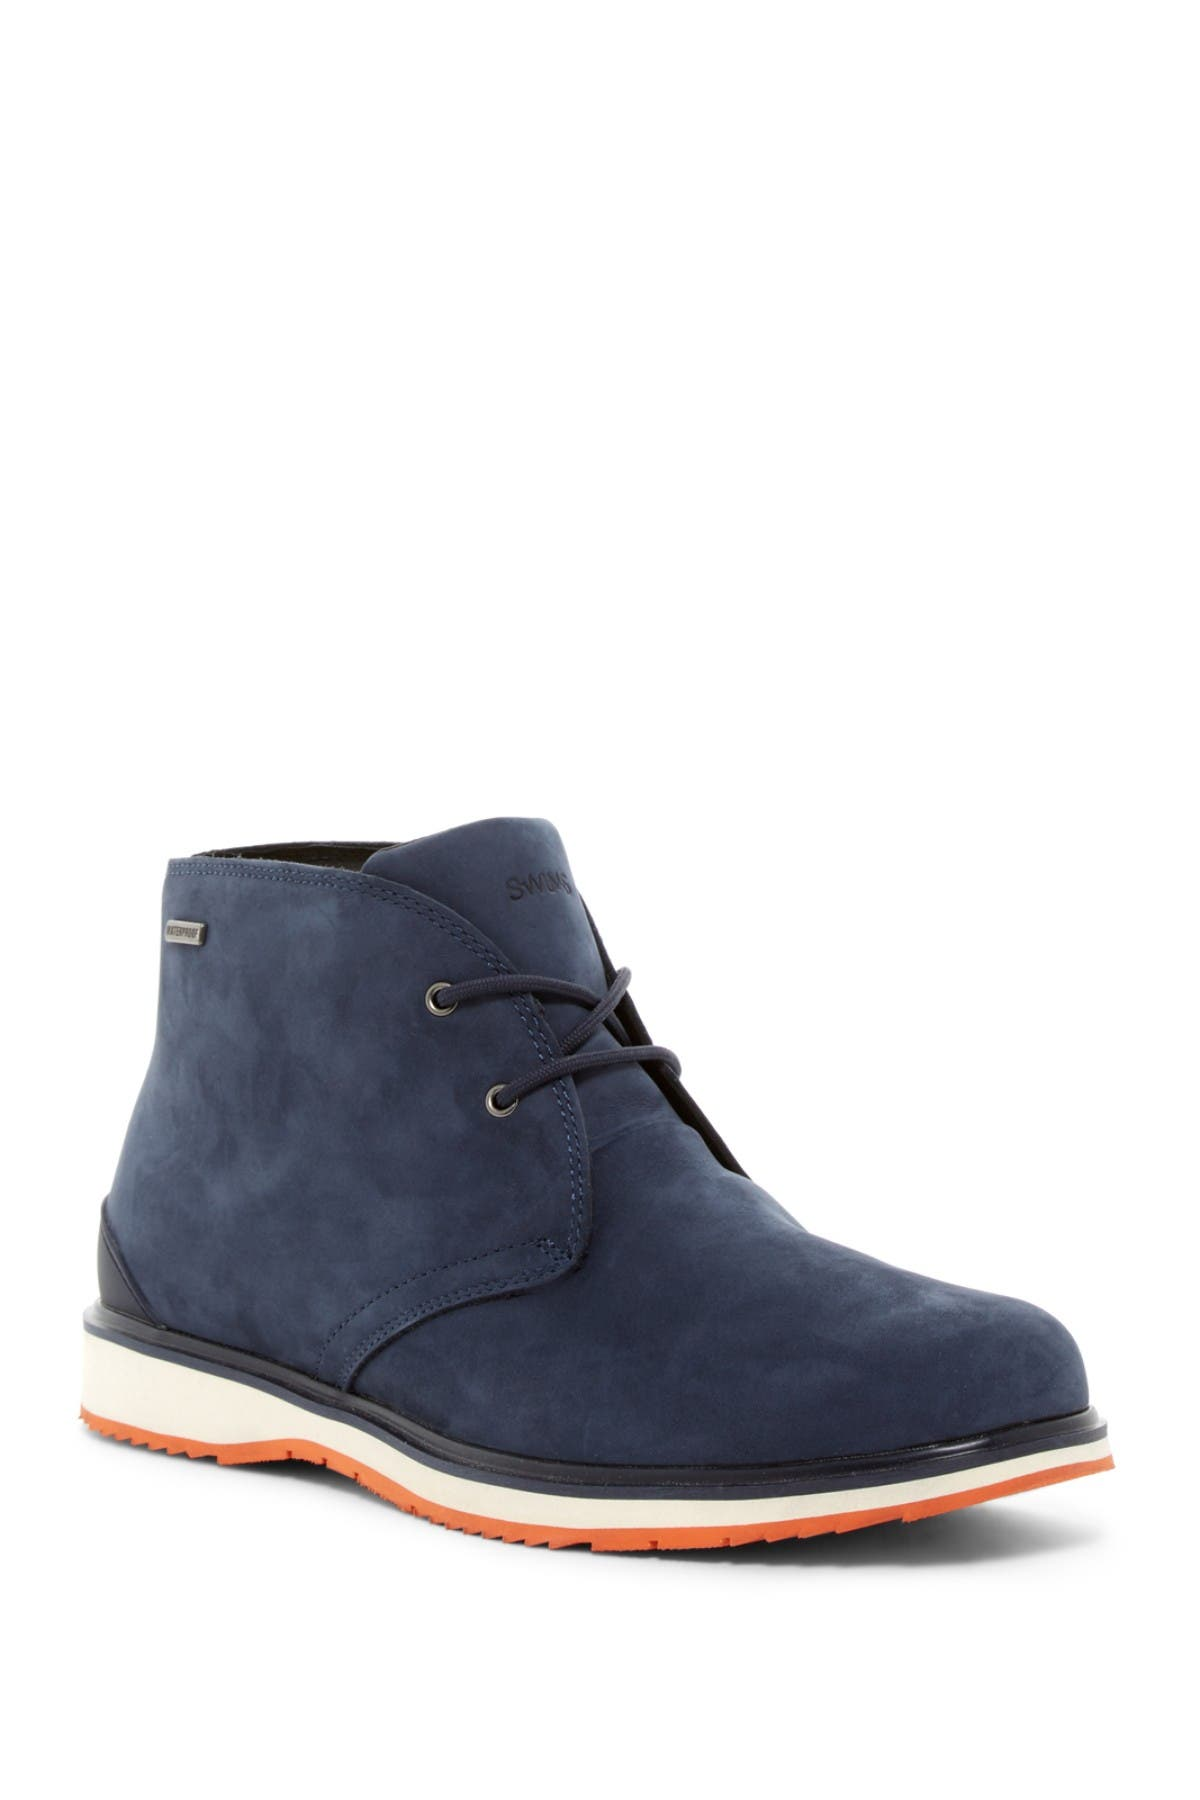 Image of Swims Barry Classic Waterproof Chukka Boot